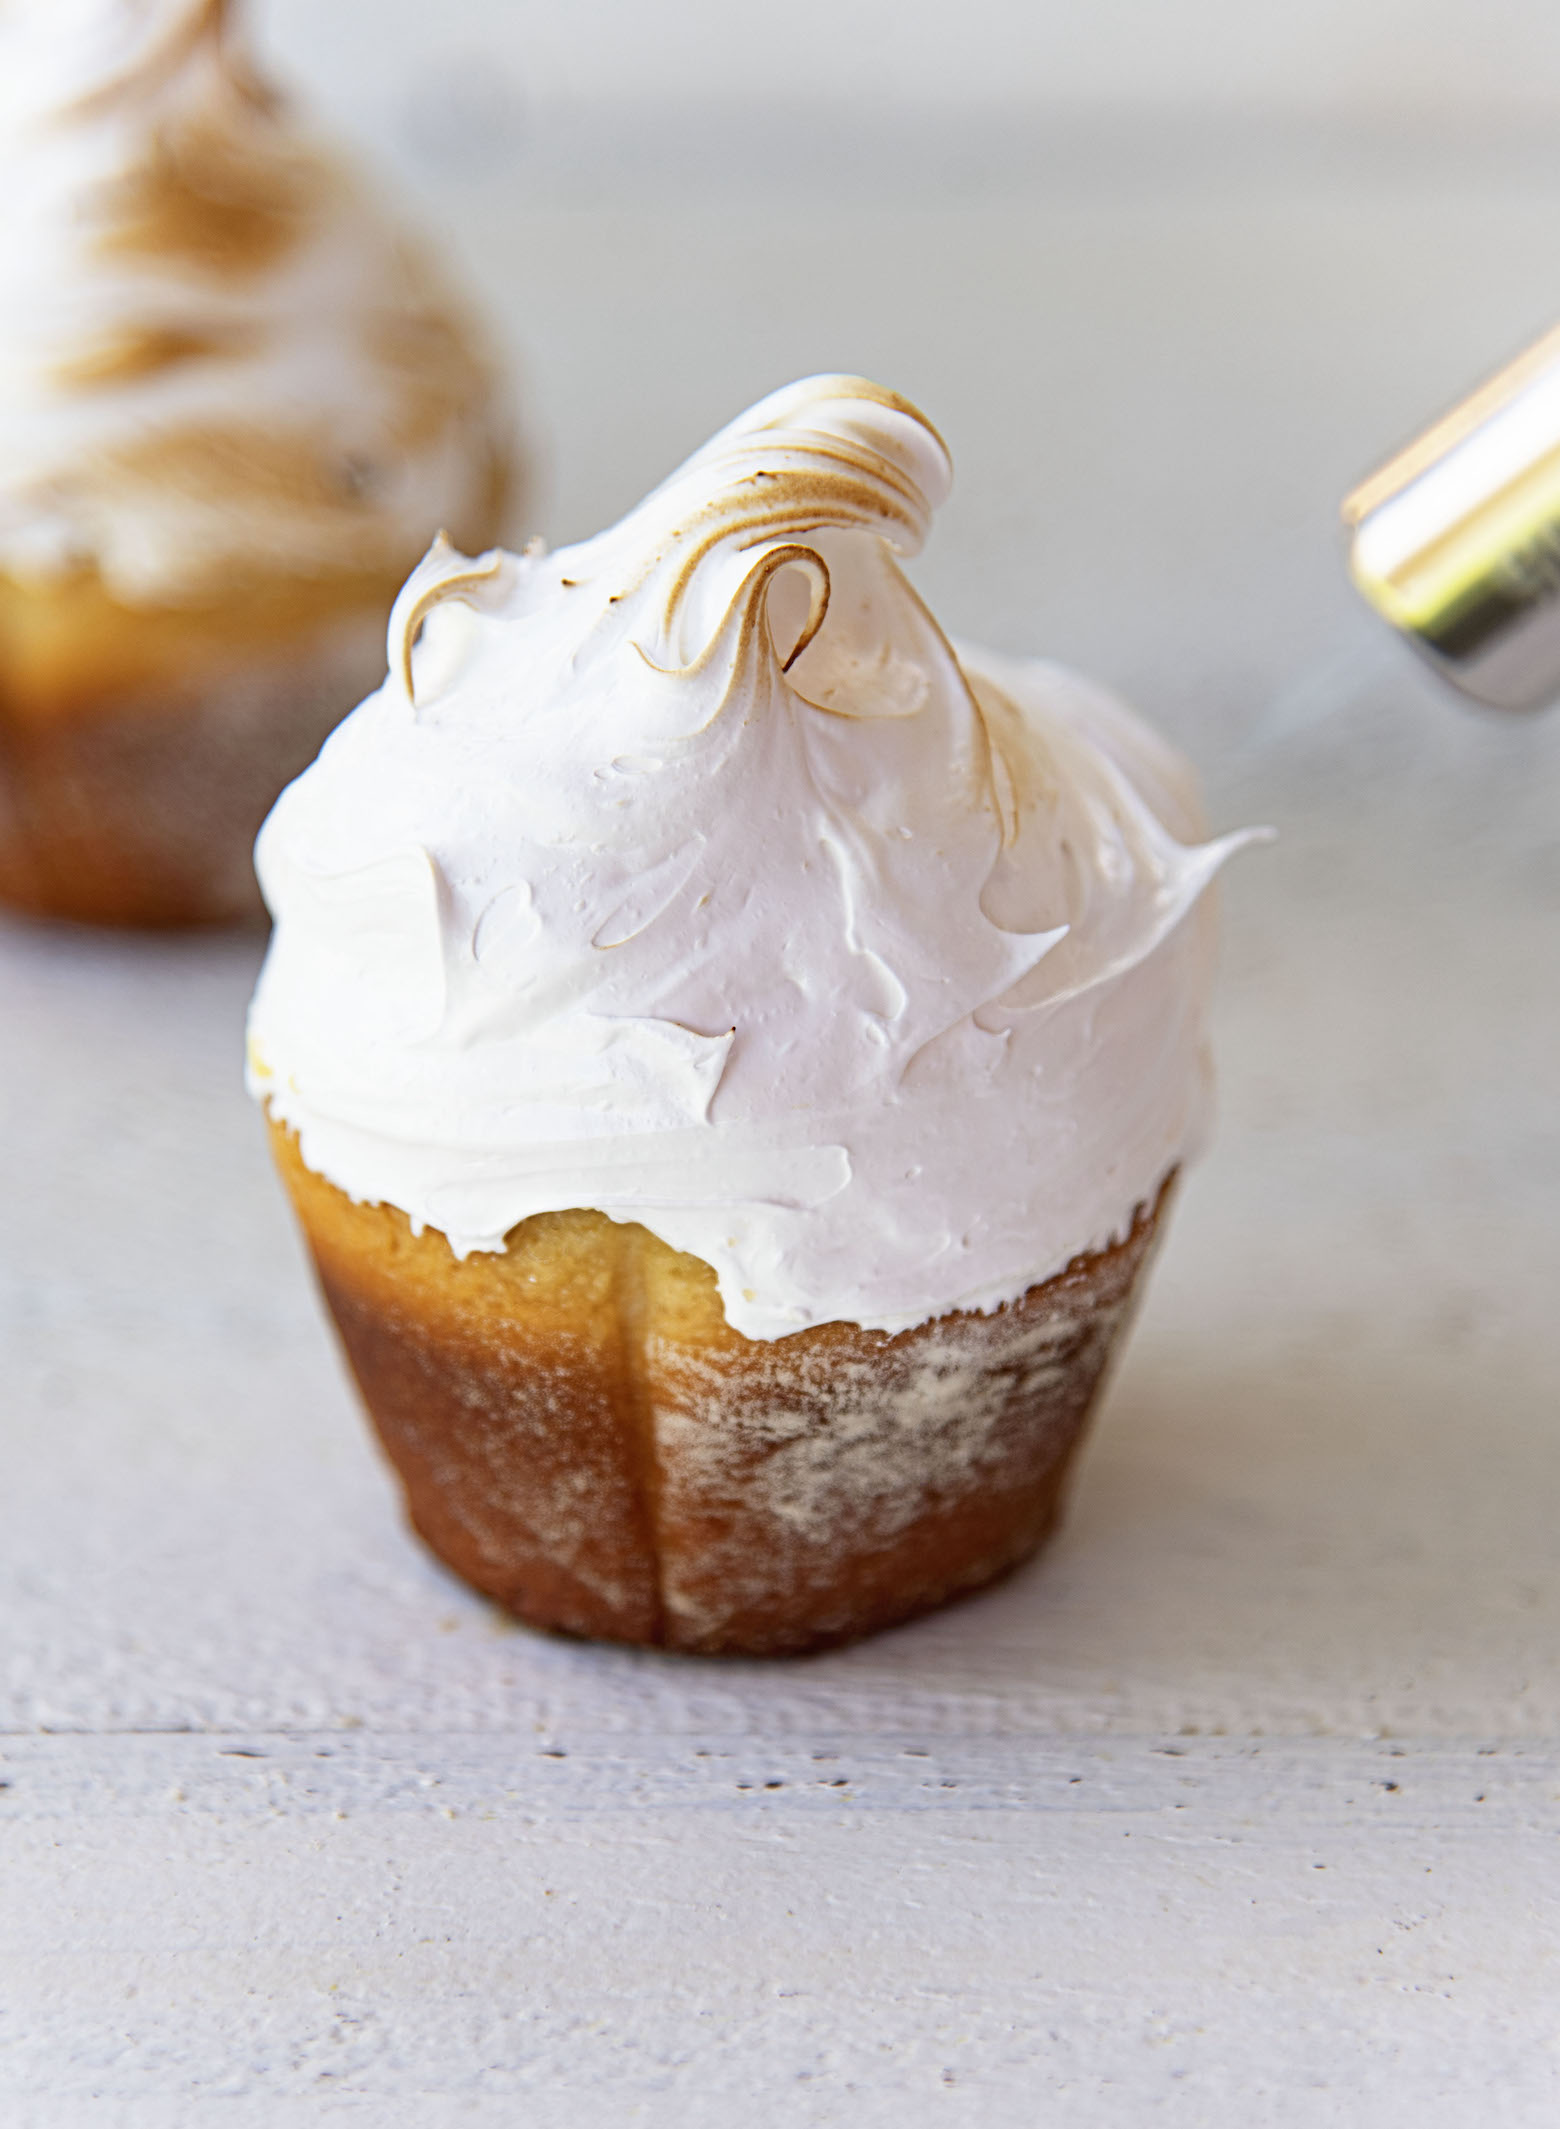 Picture of meringue covered sweet roll with blowtorch toasting the meringue.